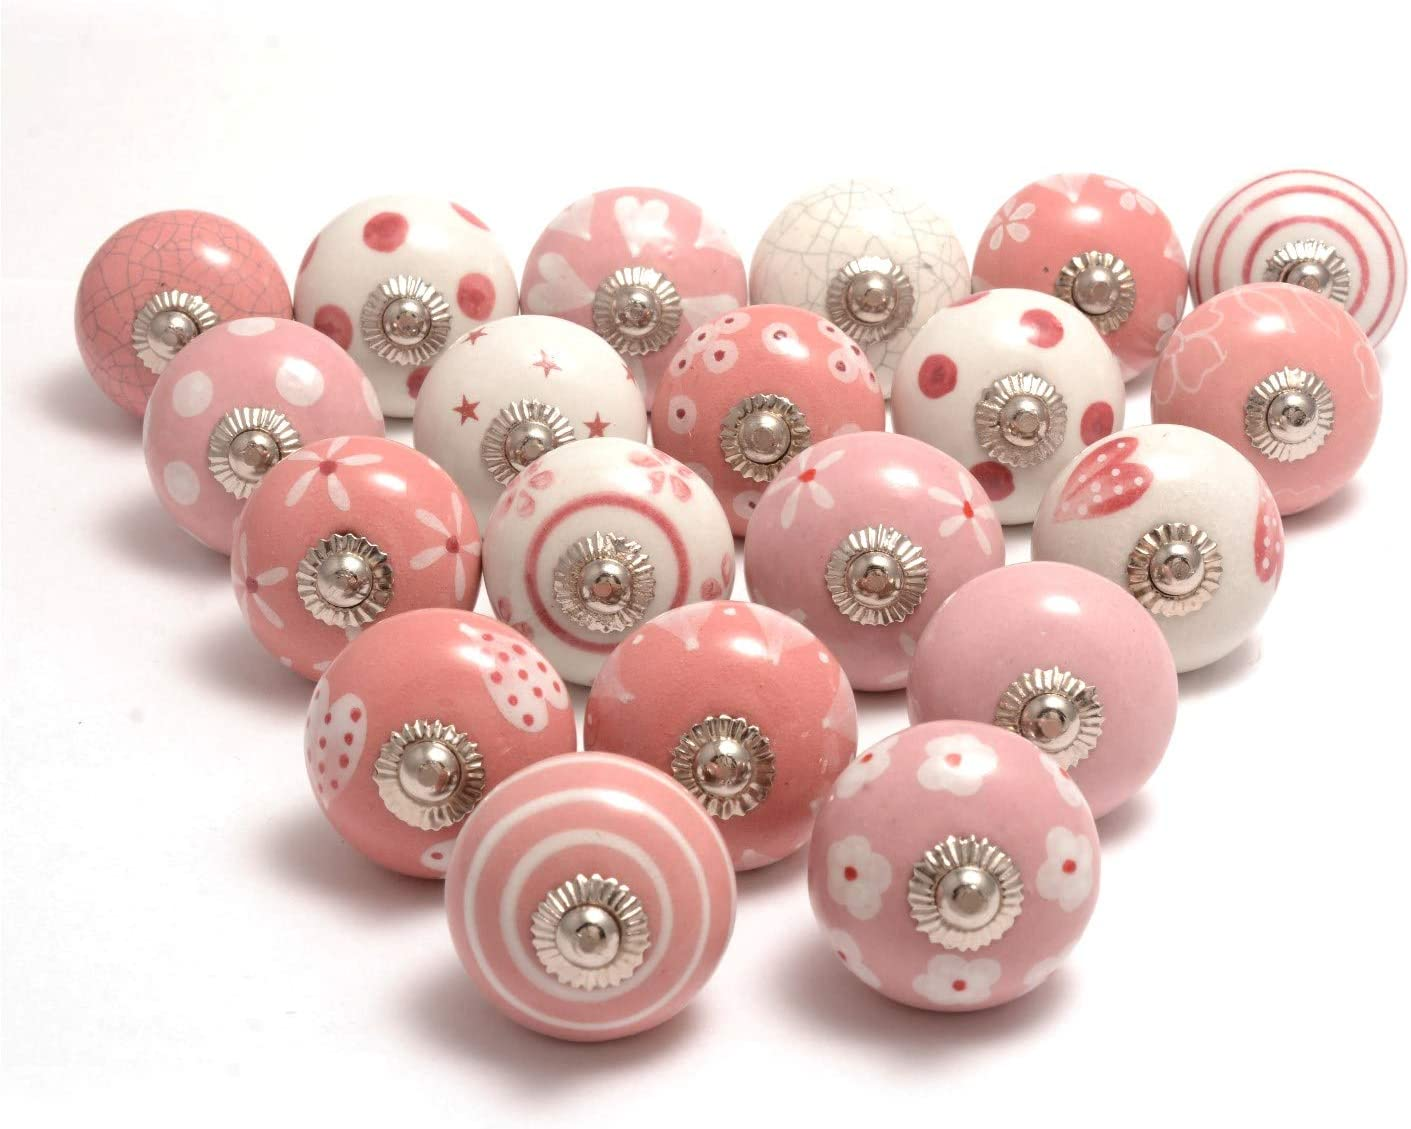 x12 Pink Glass Door Knob Cabinet Drawer Handle Set Vintage Star Design